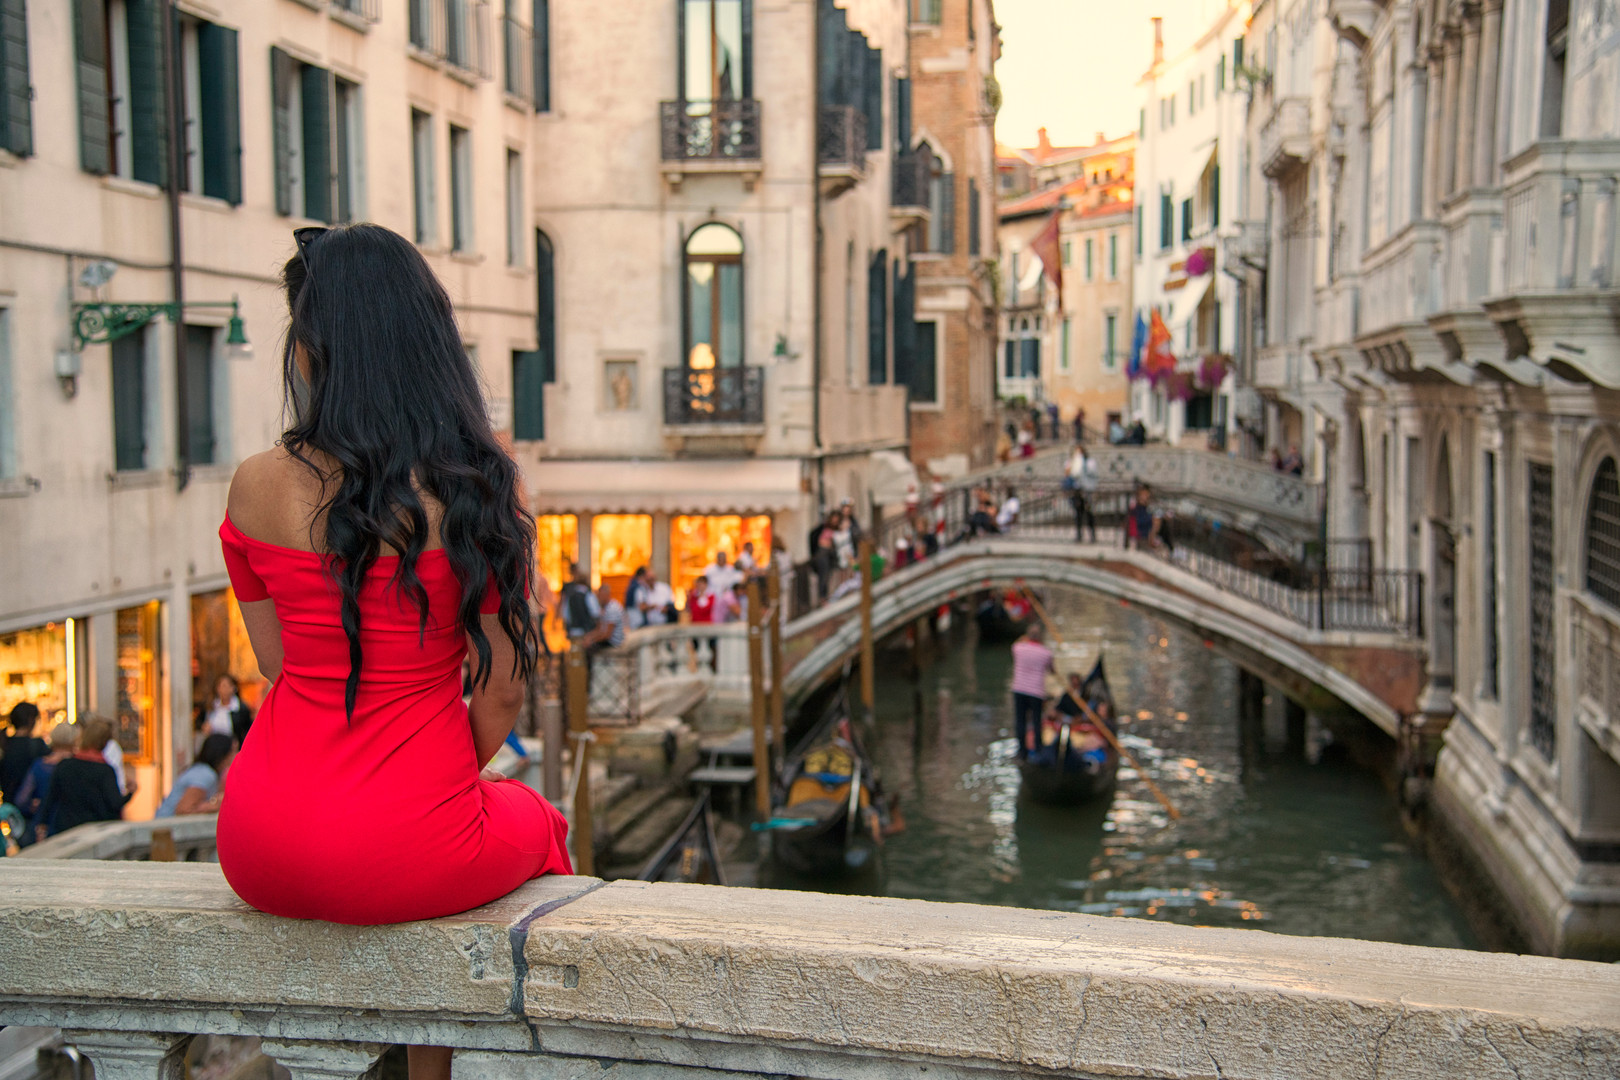 The Girl in the red dress - Venice - A.j